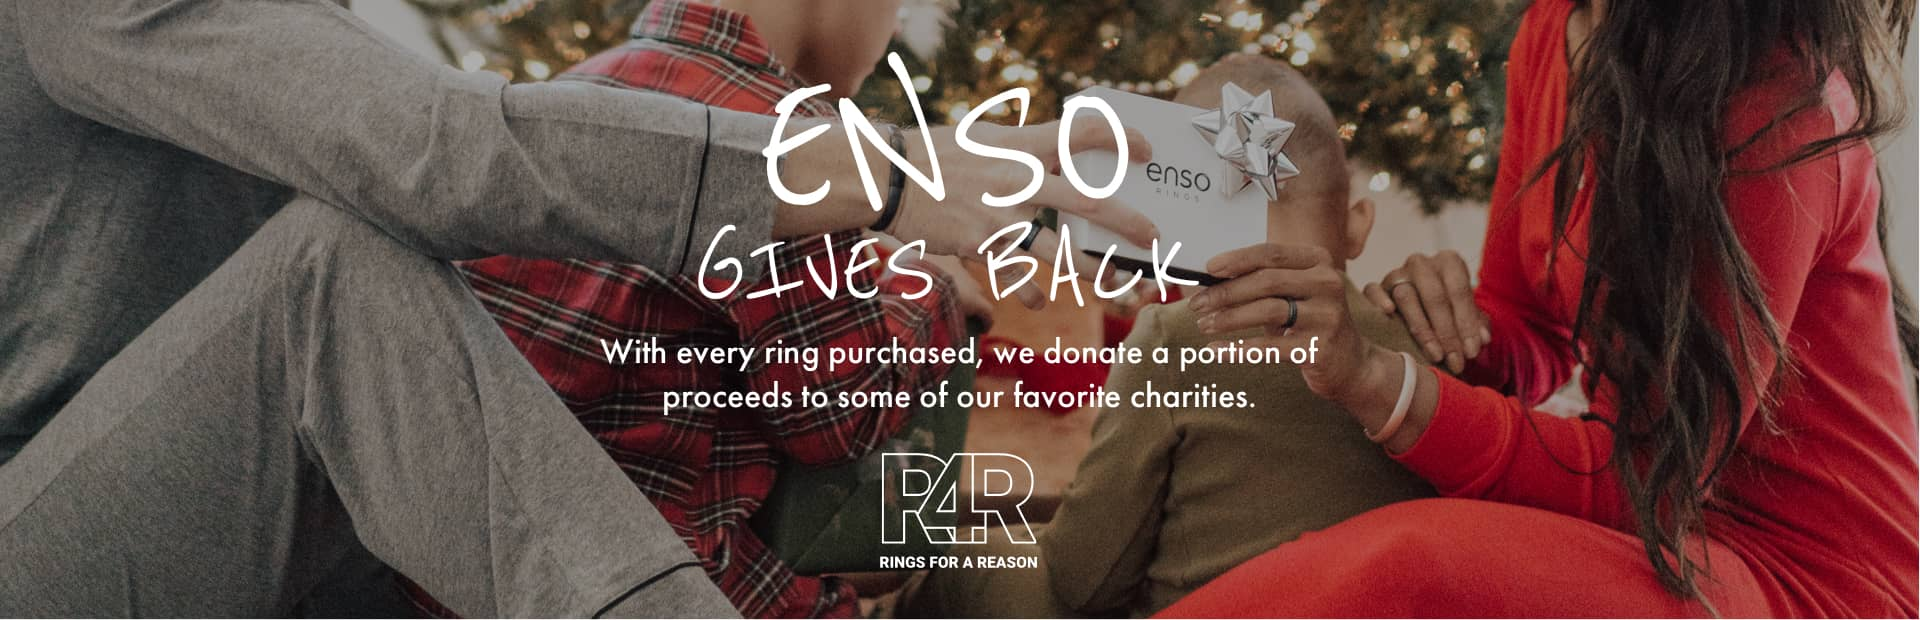 Inked Rings | Holiday Collection | Enso Rings Gives Gack - Rings for a Reason